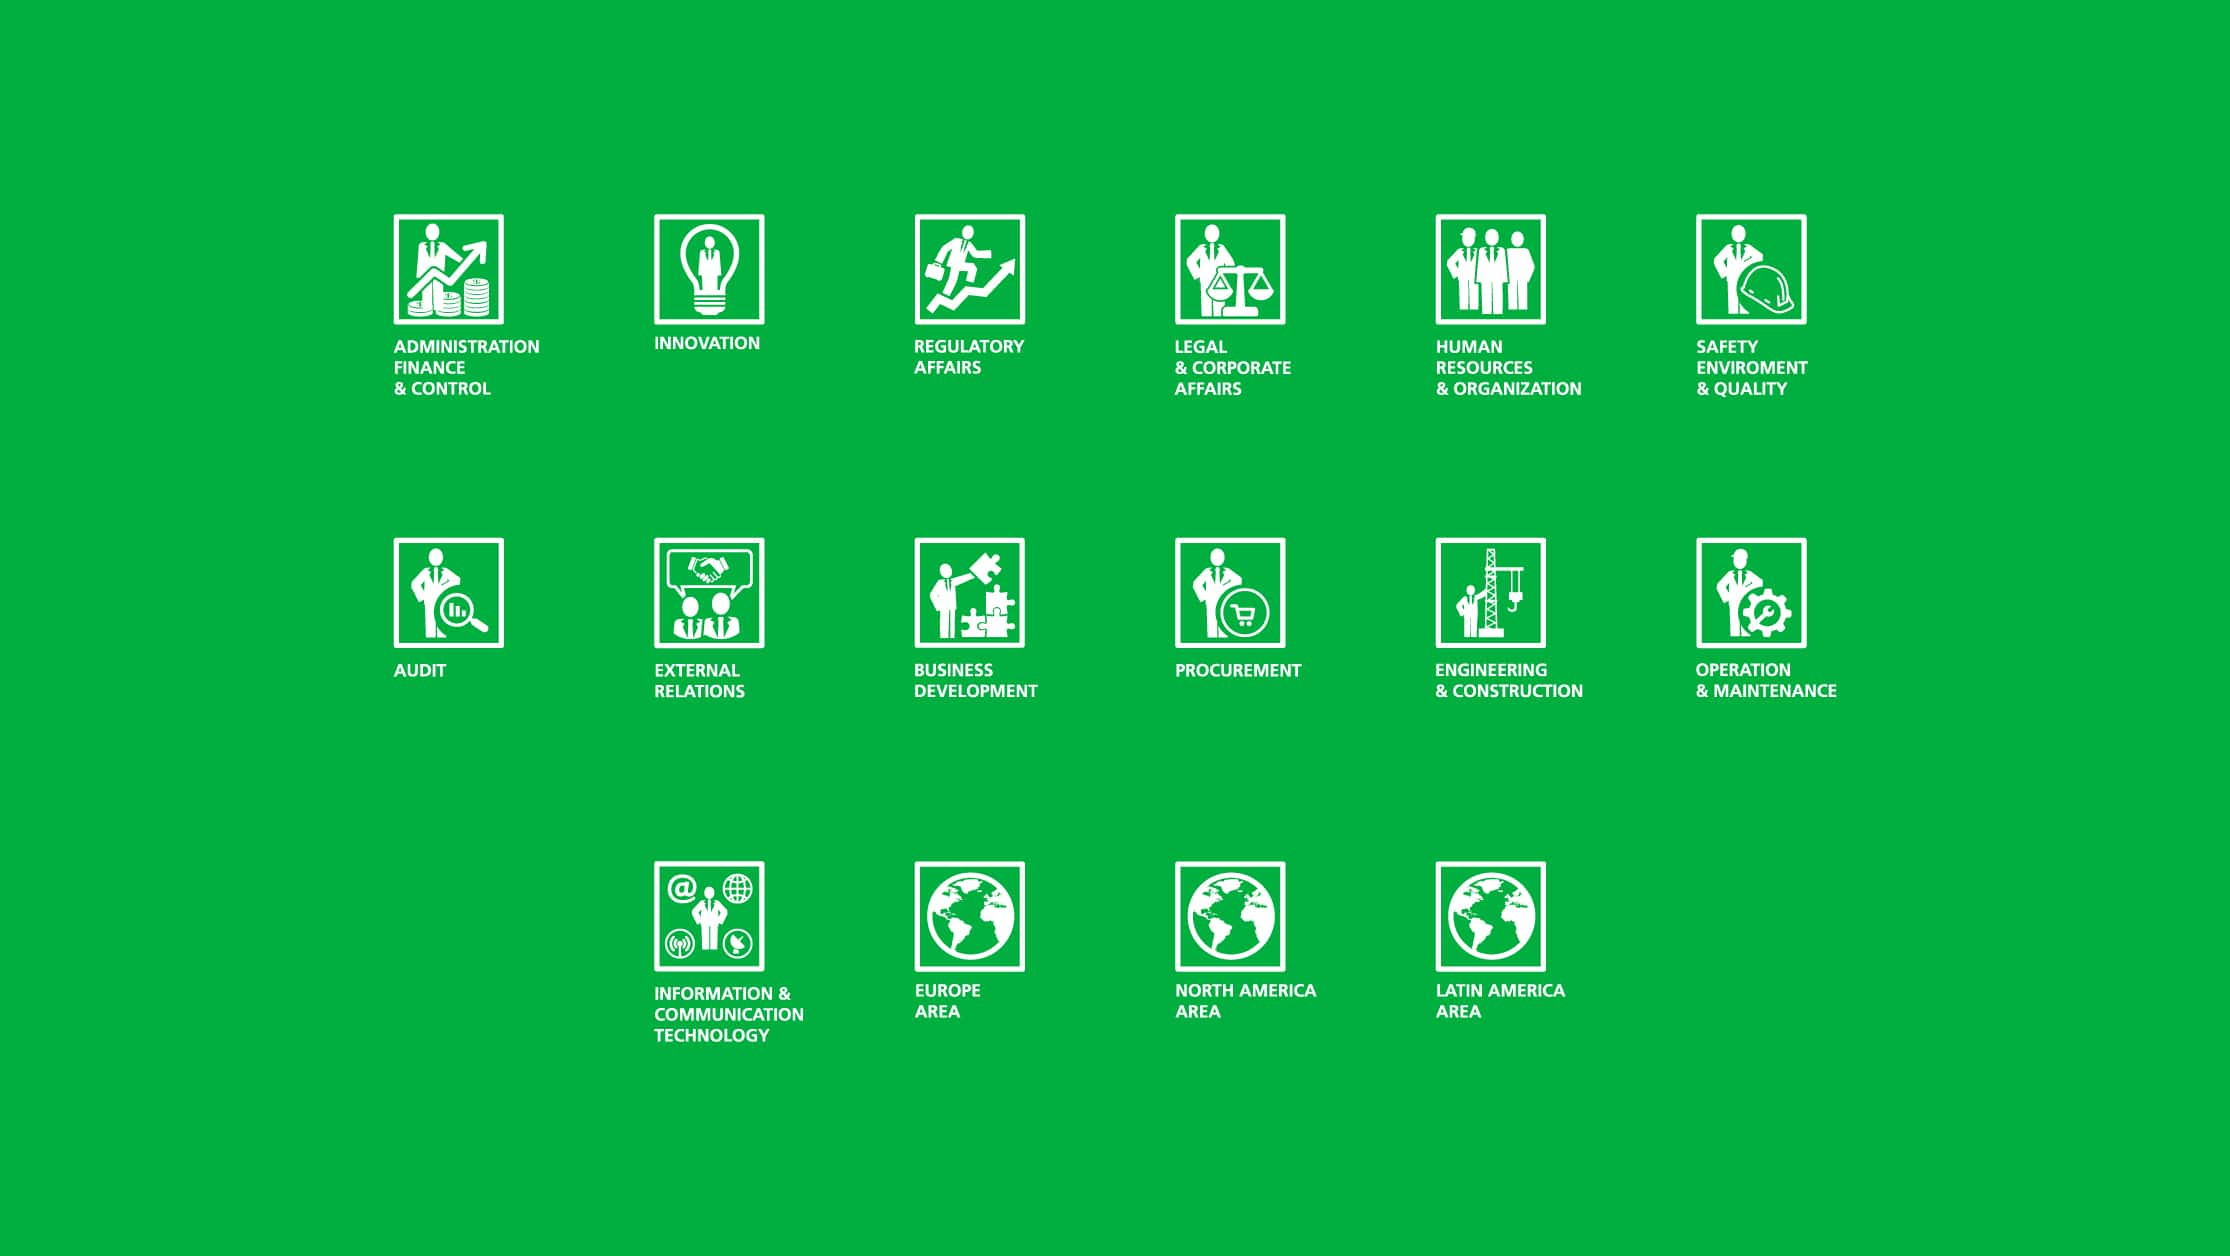 Operating instructions and brand guidelines for Enel Green Power –Luther Dsgn agency